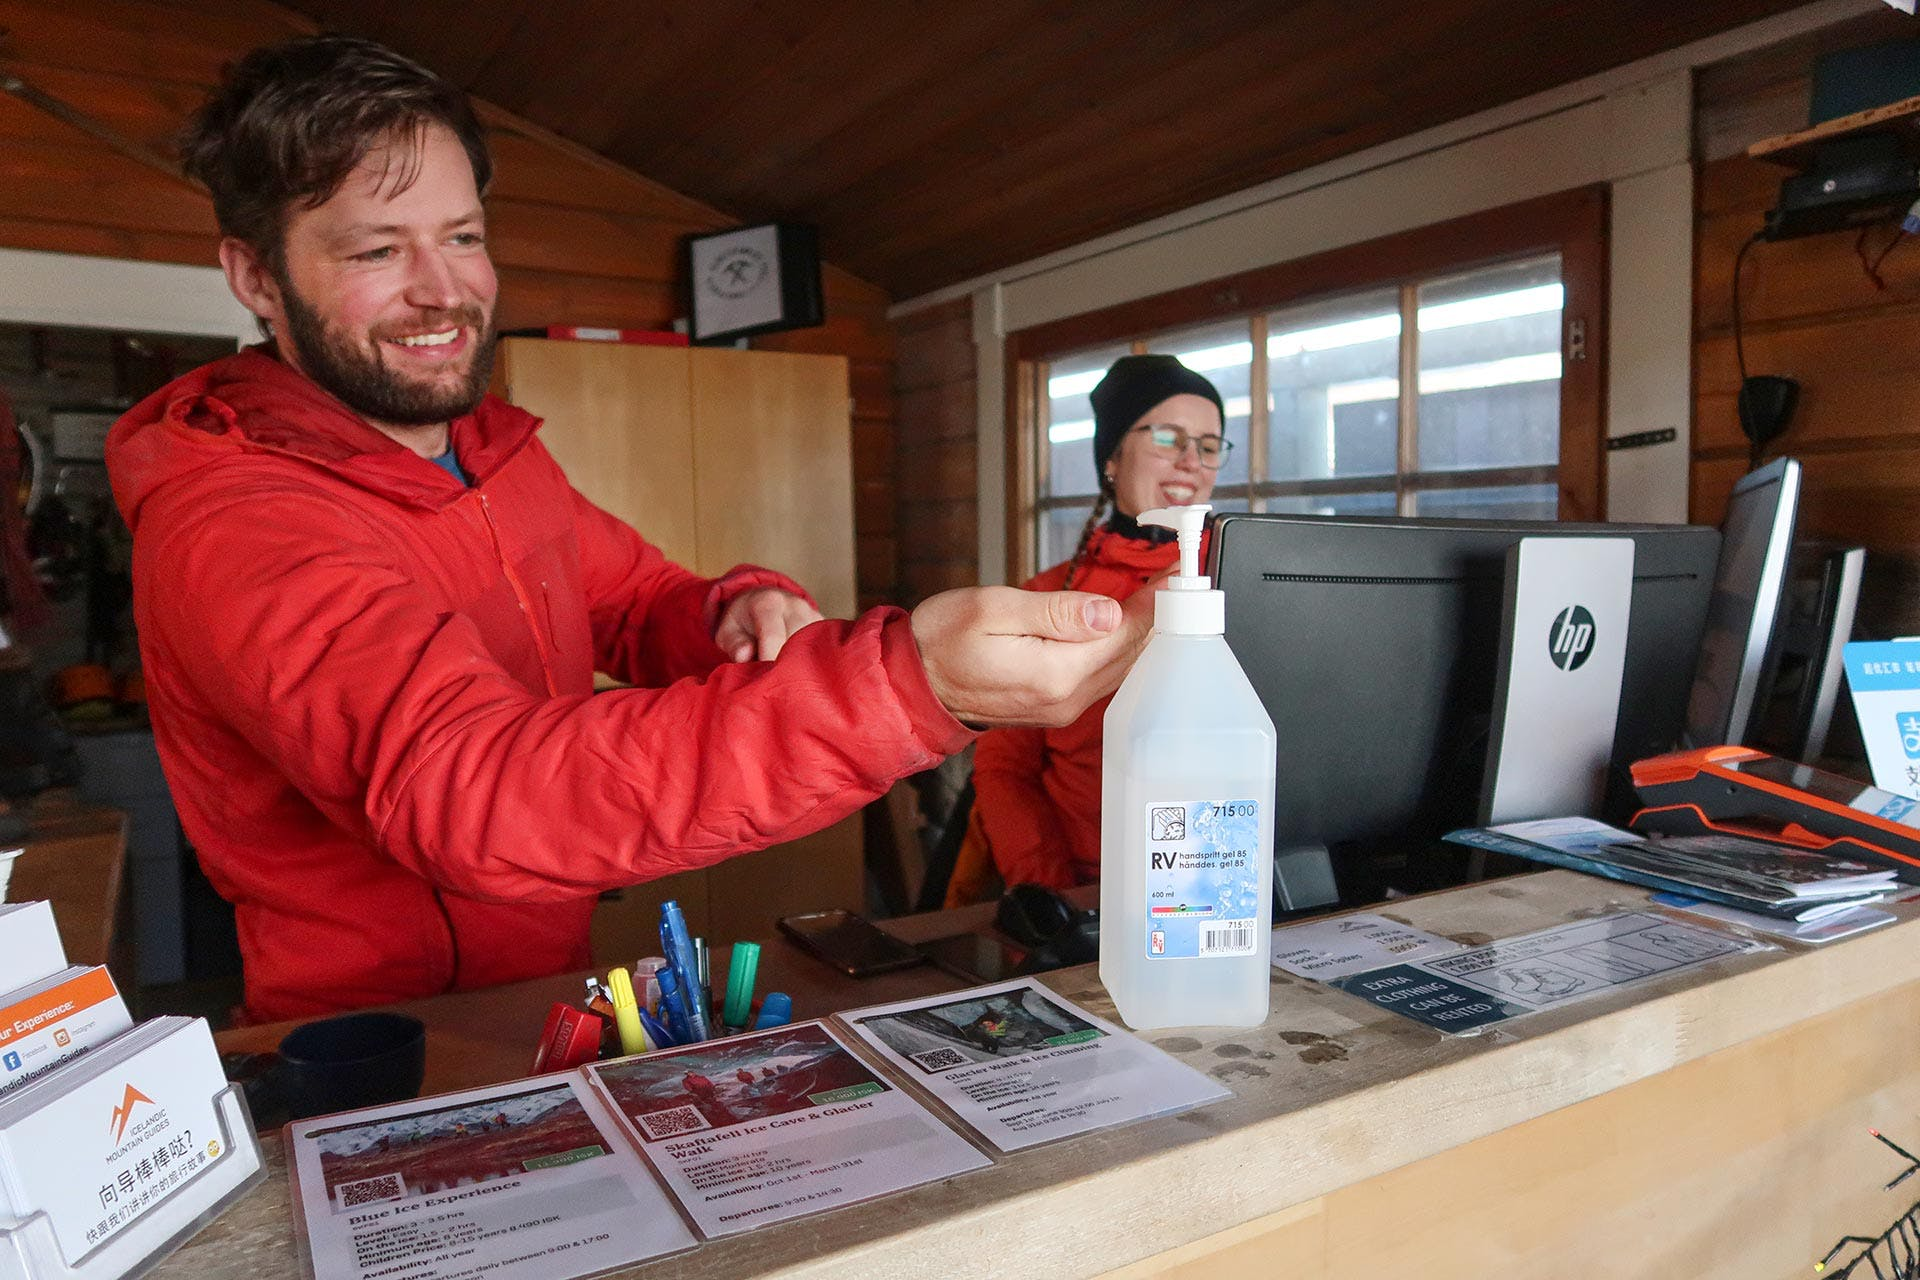 A guide disinfecting his hands before guiding a tour.